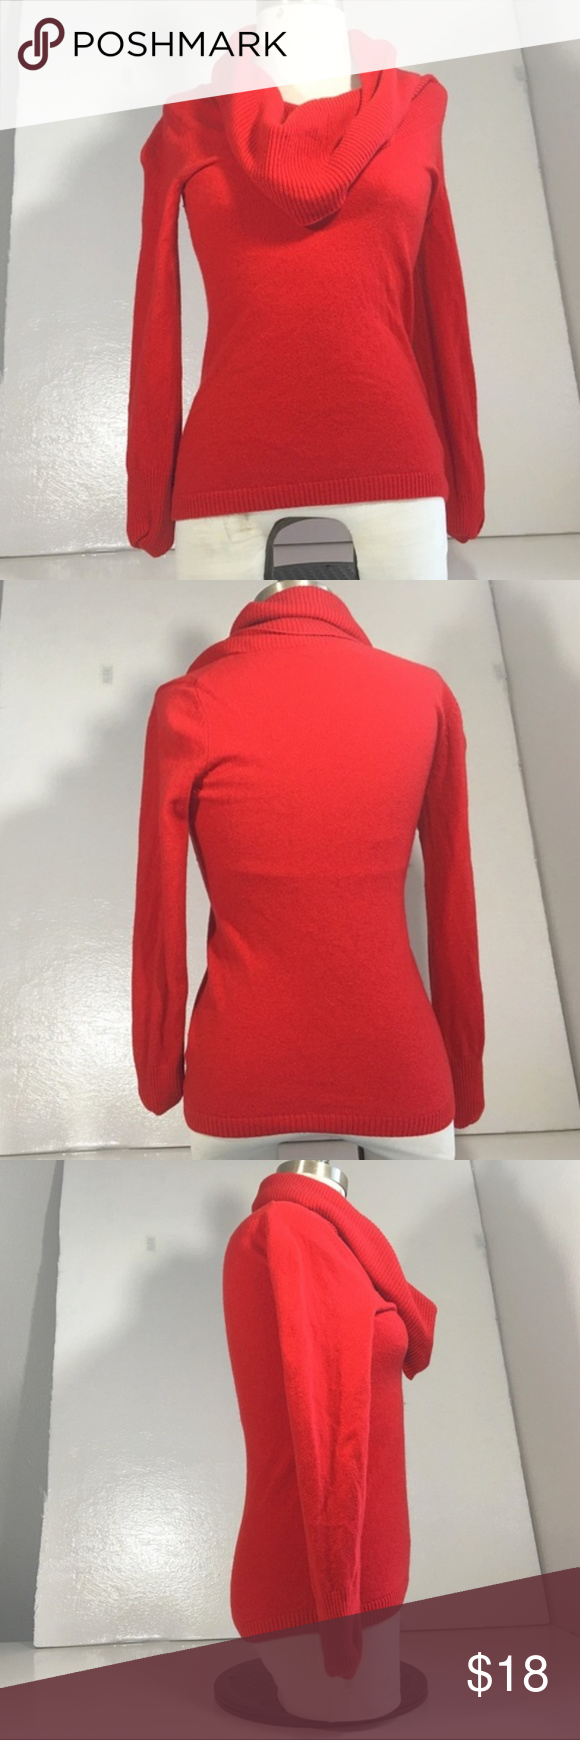 Banana Republic Red Textured Cowl Neck Sweater XS | Arm pits, Cowl ...